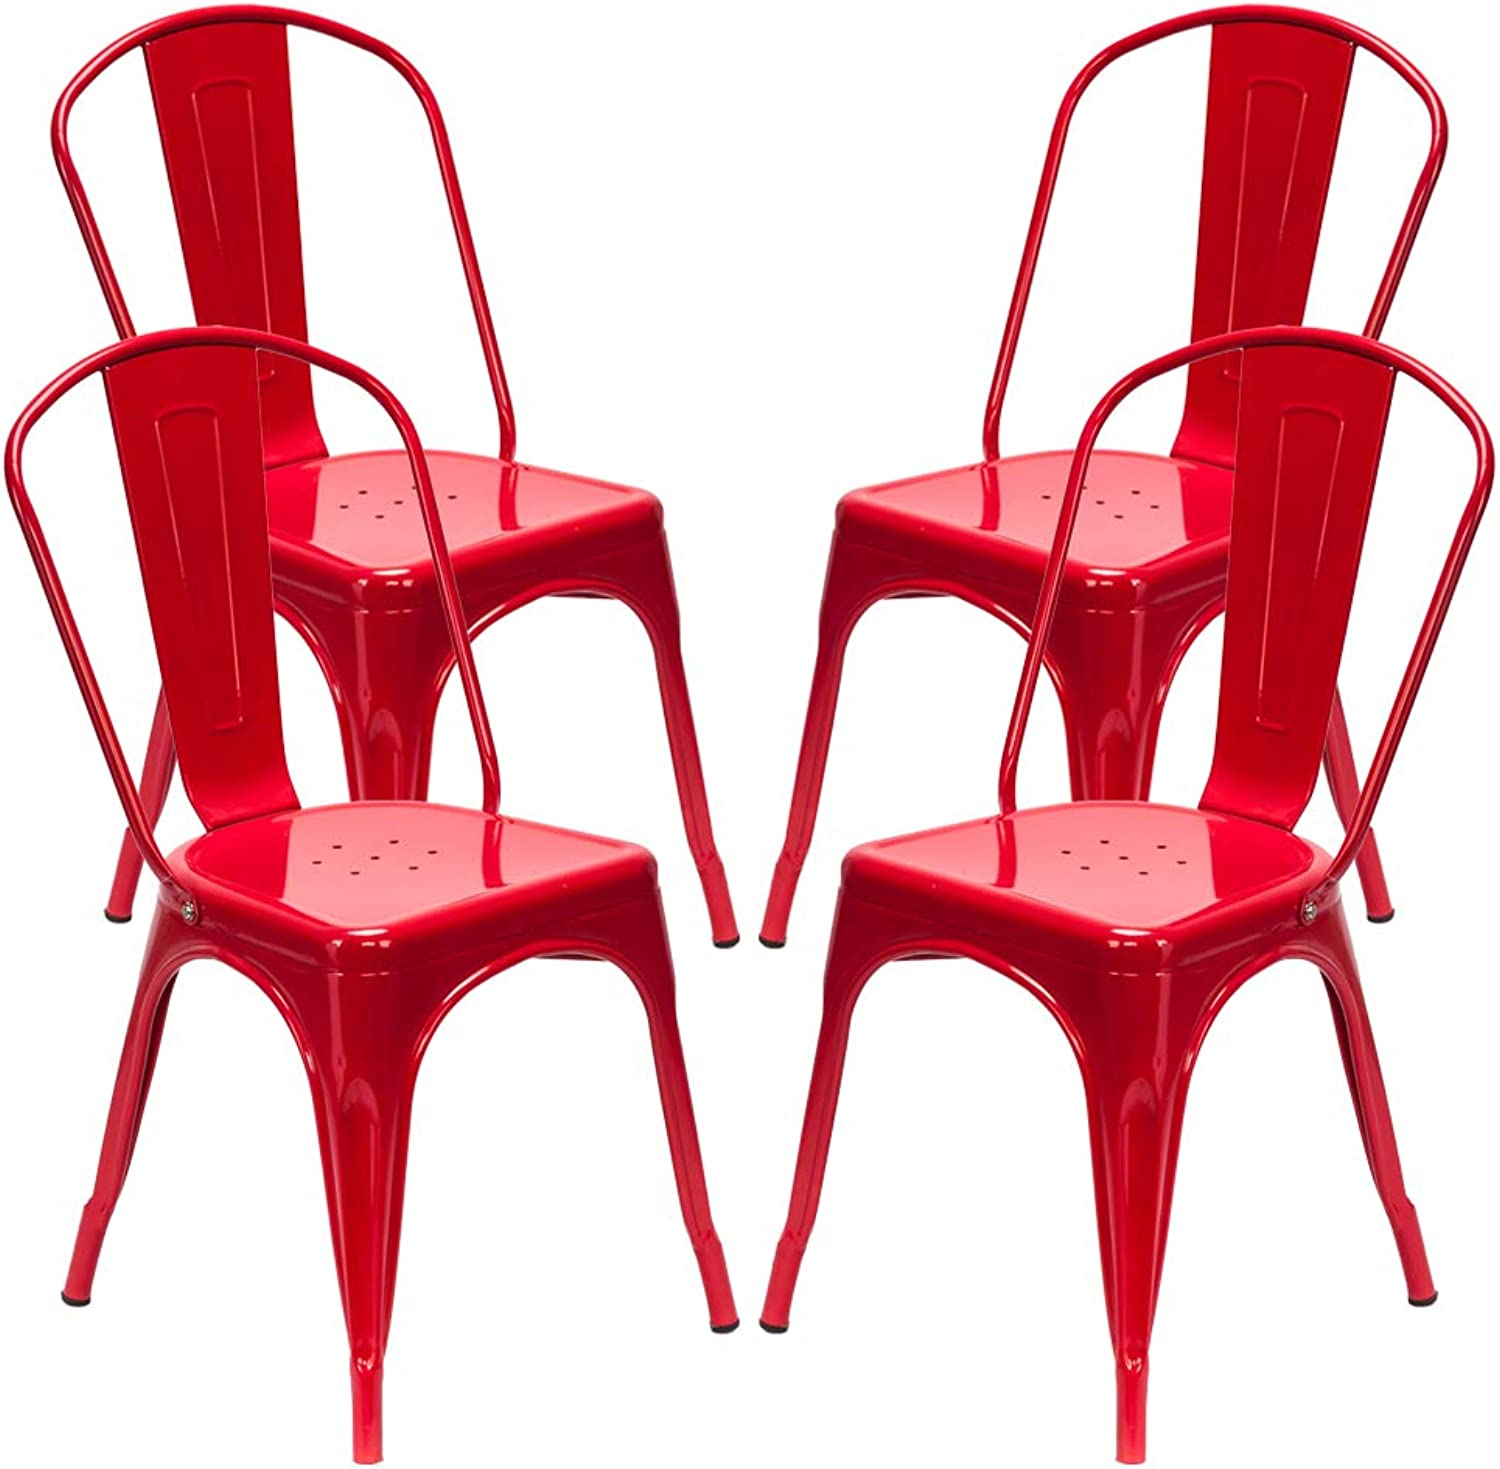 HIKTY Chairs Metal Stackable Restaurant Dining Chair Metal Counter Stool Trattoria Chair Metal Stools Indoor-Outdoor Counter Height Stool Set of 4 (Red)